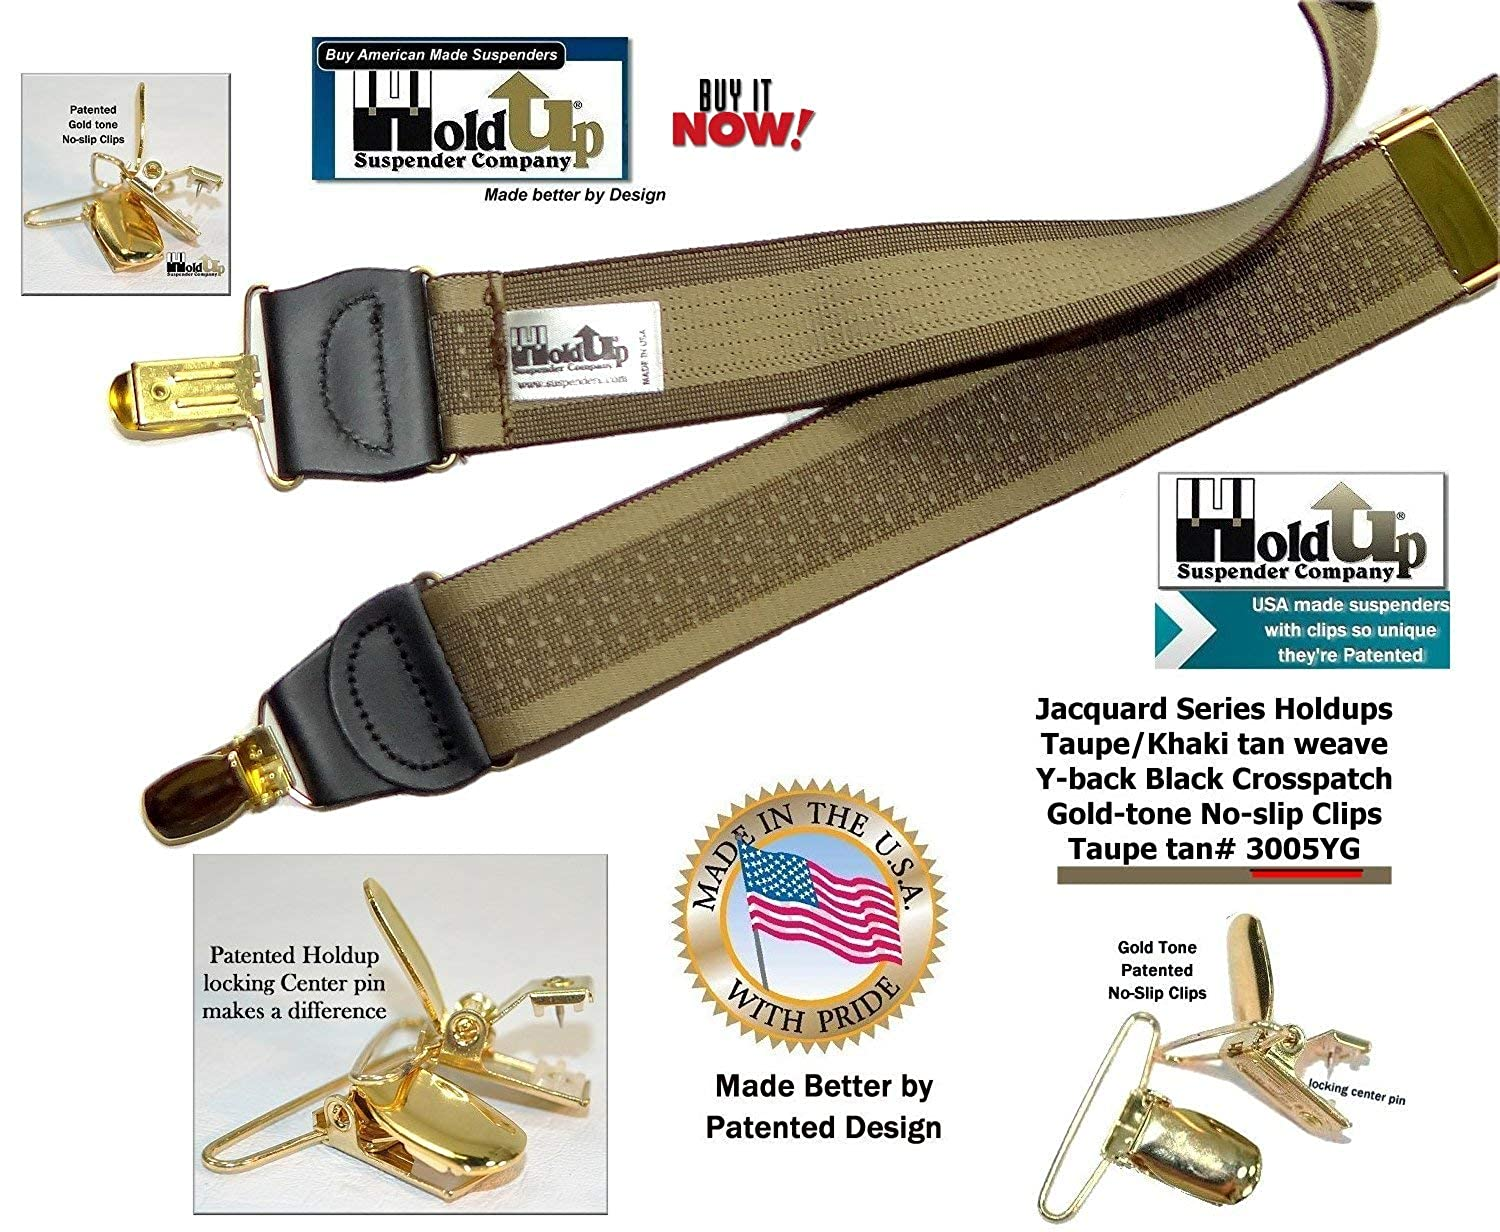 Holdup Brand Taupe and Tan Jacquard weave Y-back Suspenders with patented No-slip Gold-tone Clips Holdup Suspender Company Inc 3005YG